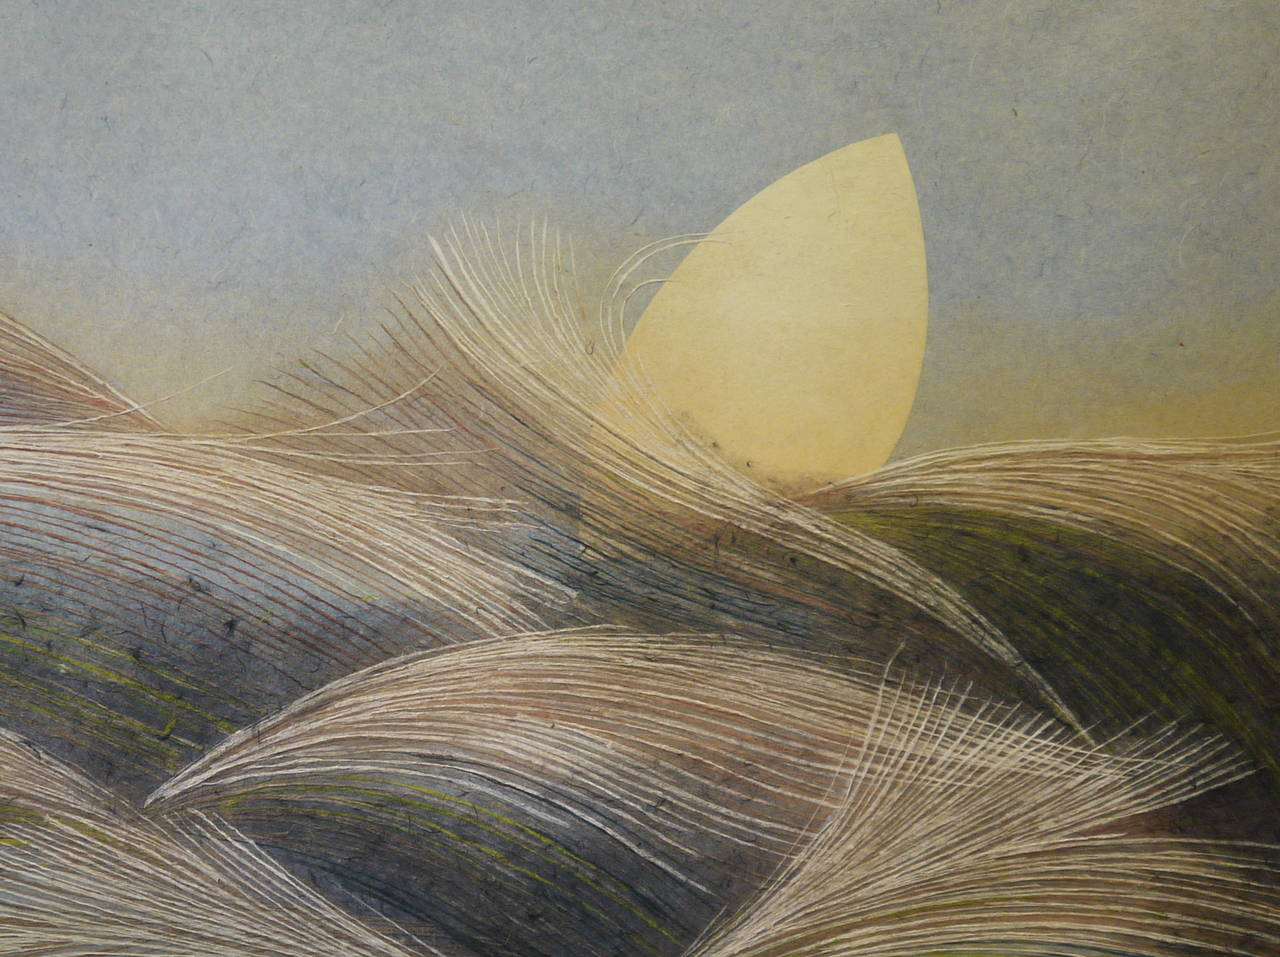 A beautiful large-scale work by the Japanese artist, Kasugai, circa 1970.